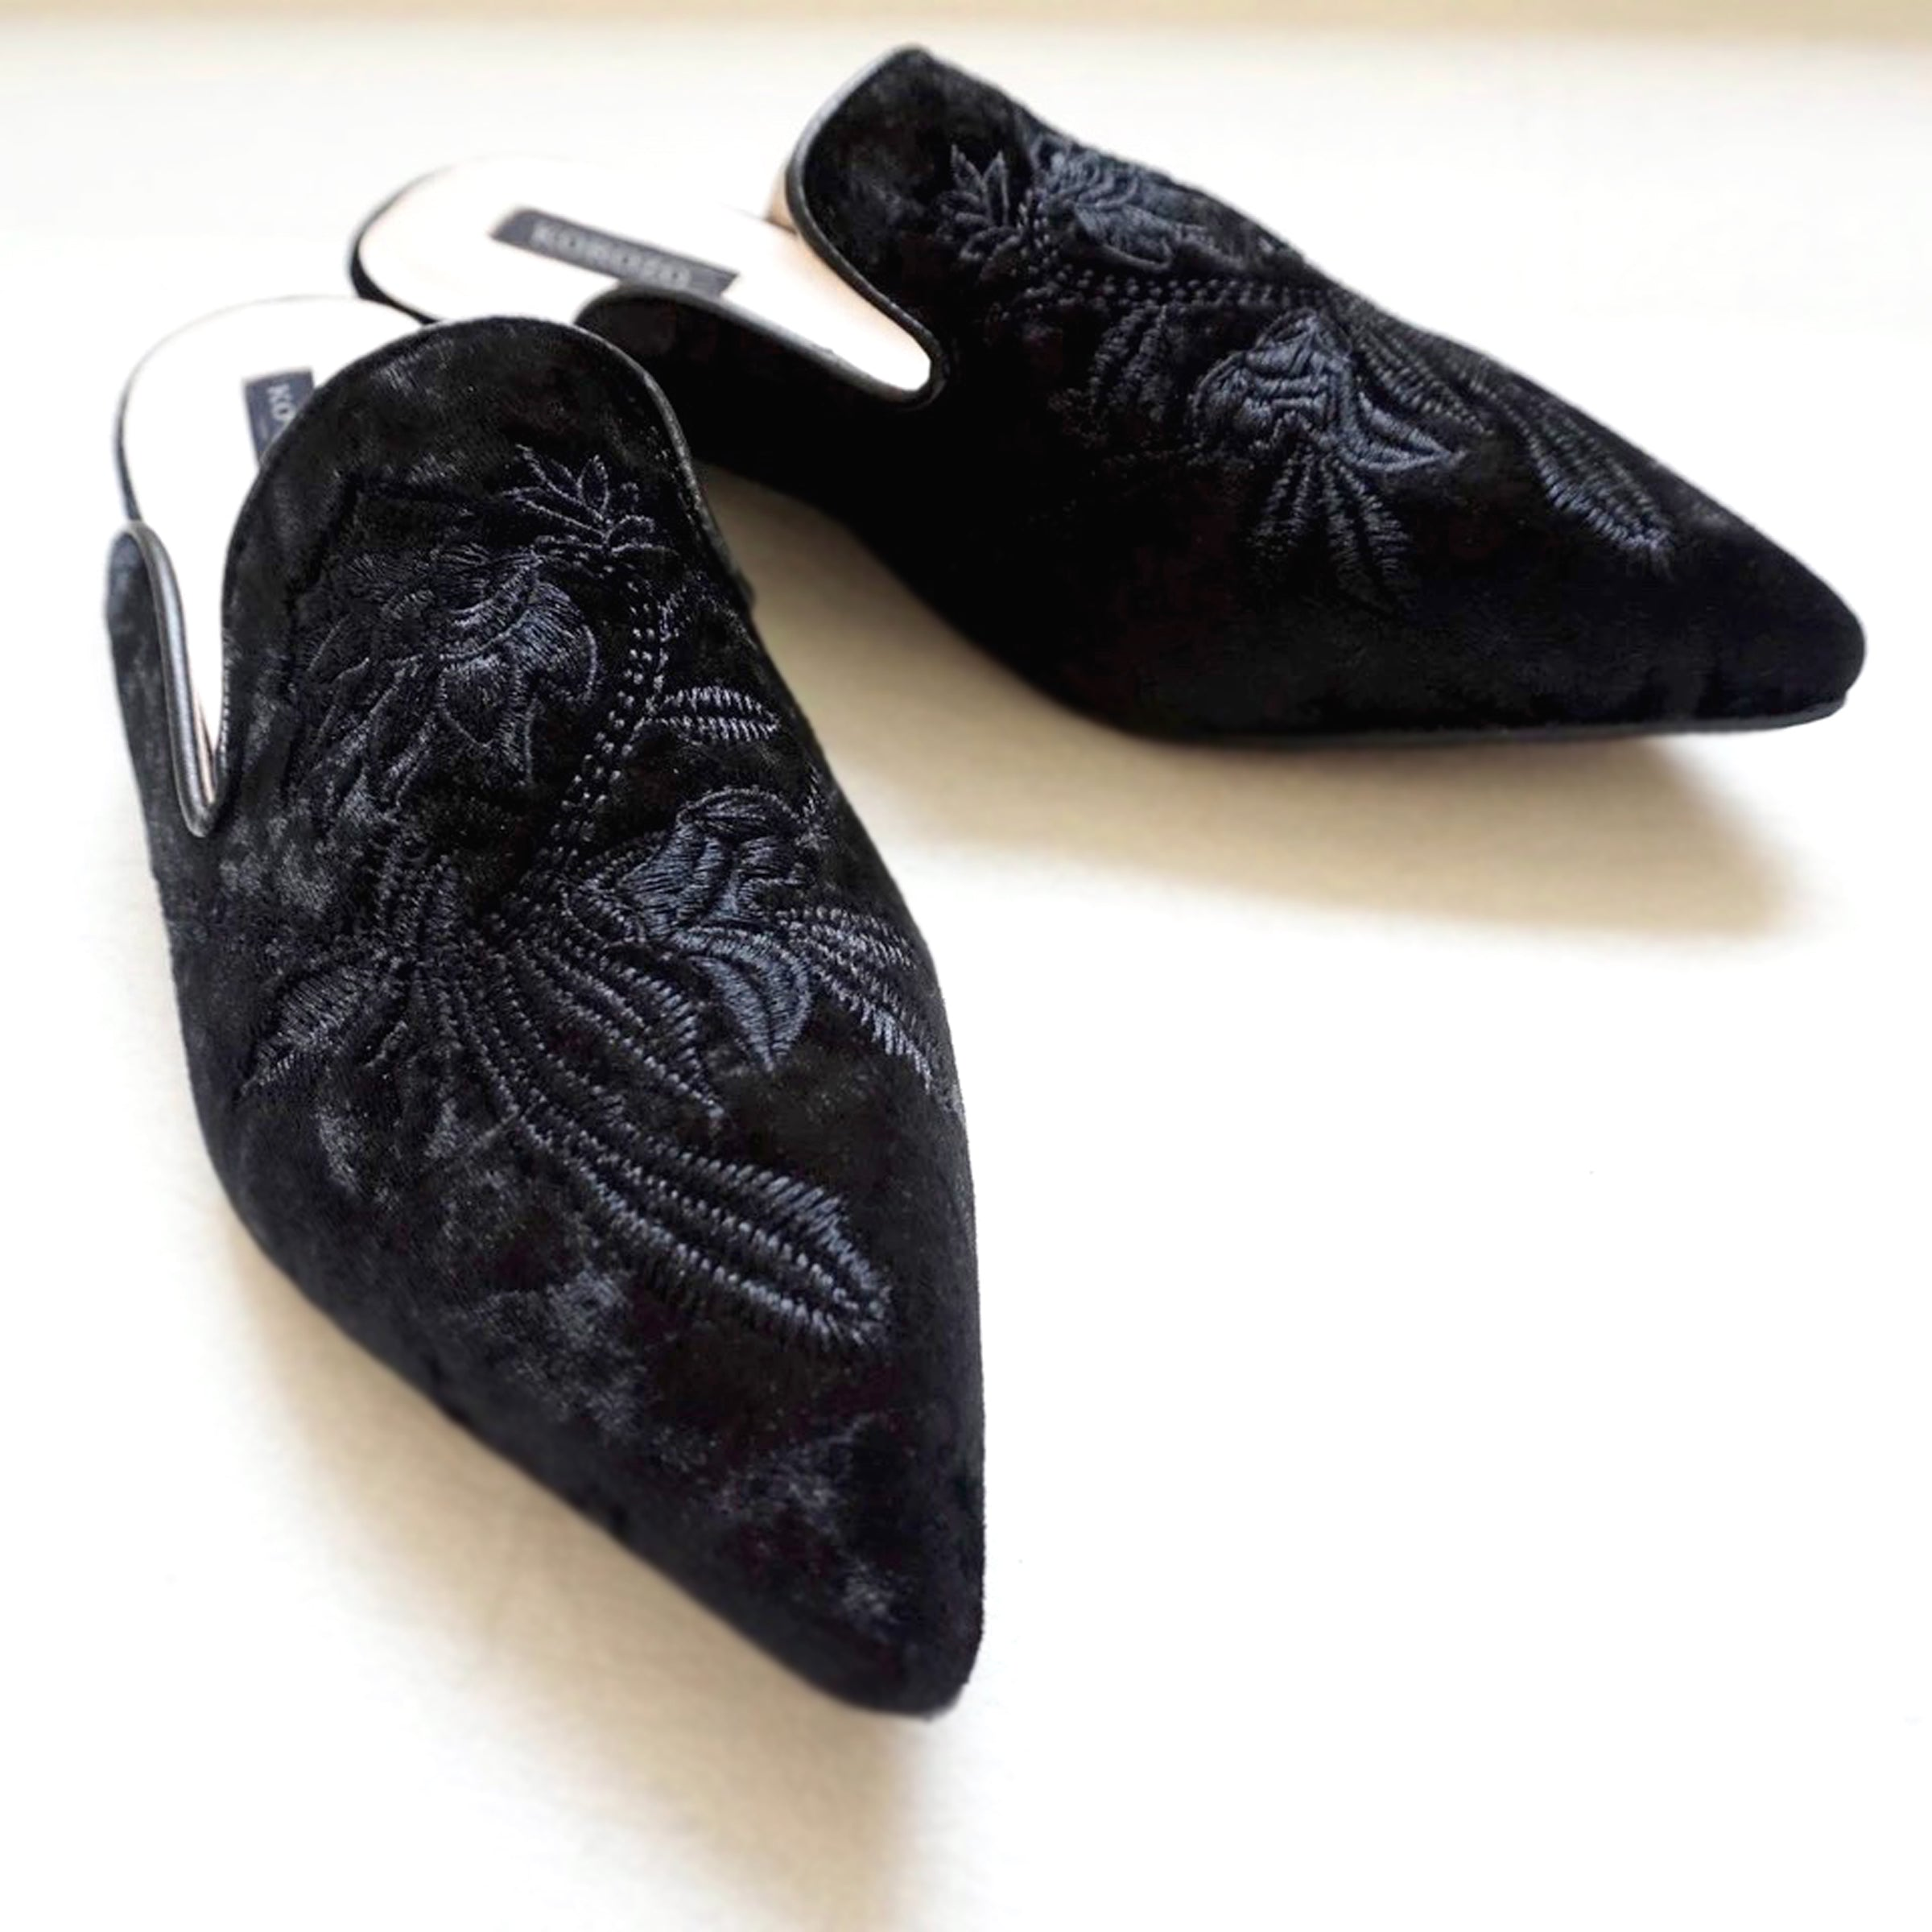 Tara Black Flower Embroidery Mules